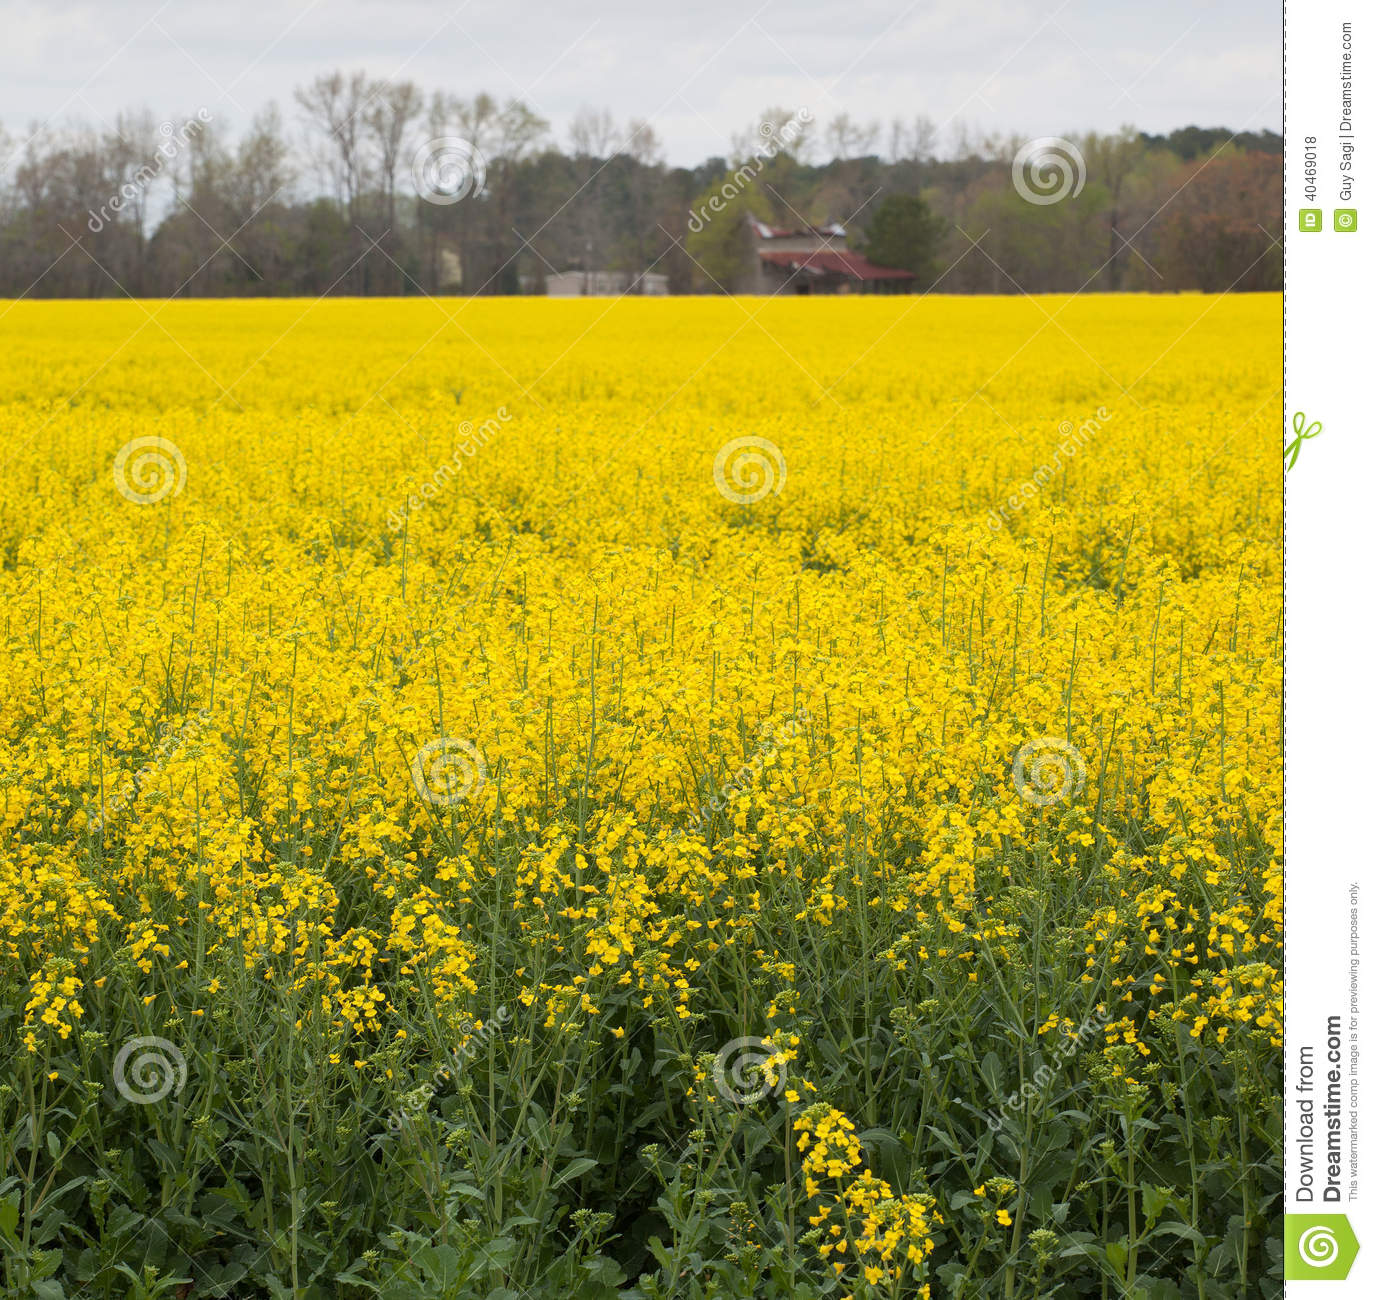 Bright crop stock photo image of flowers carolina yellow 40469018 download bright crop stock photo image of flowers carolina yellow 40469018 mightylinksfo